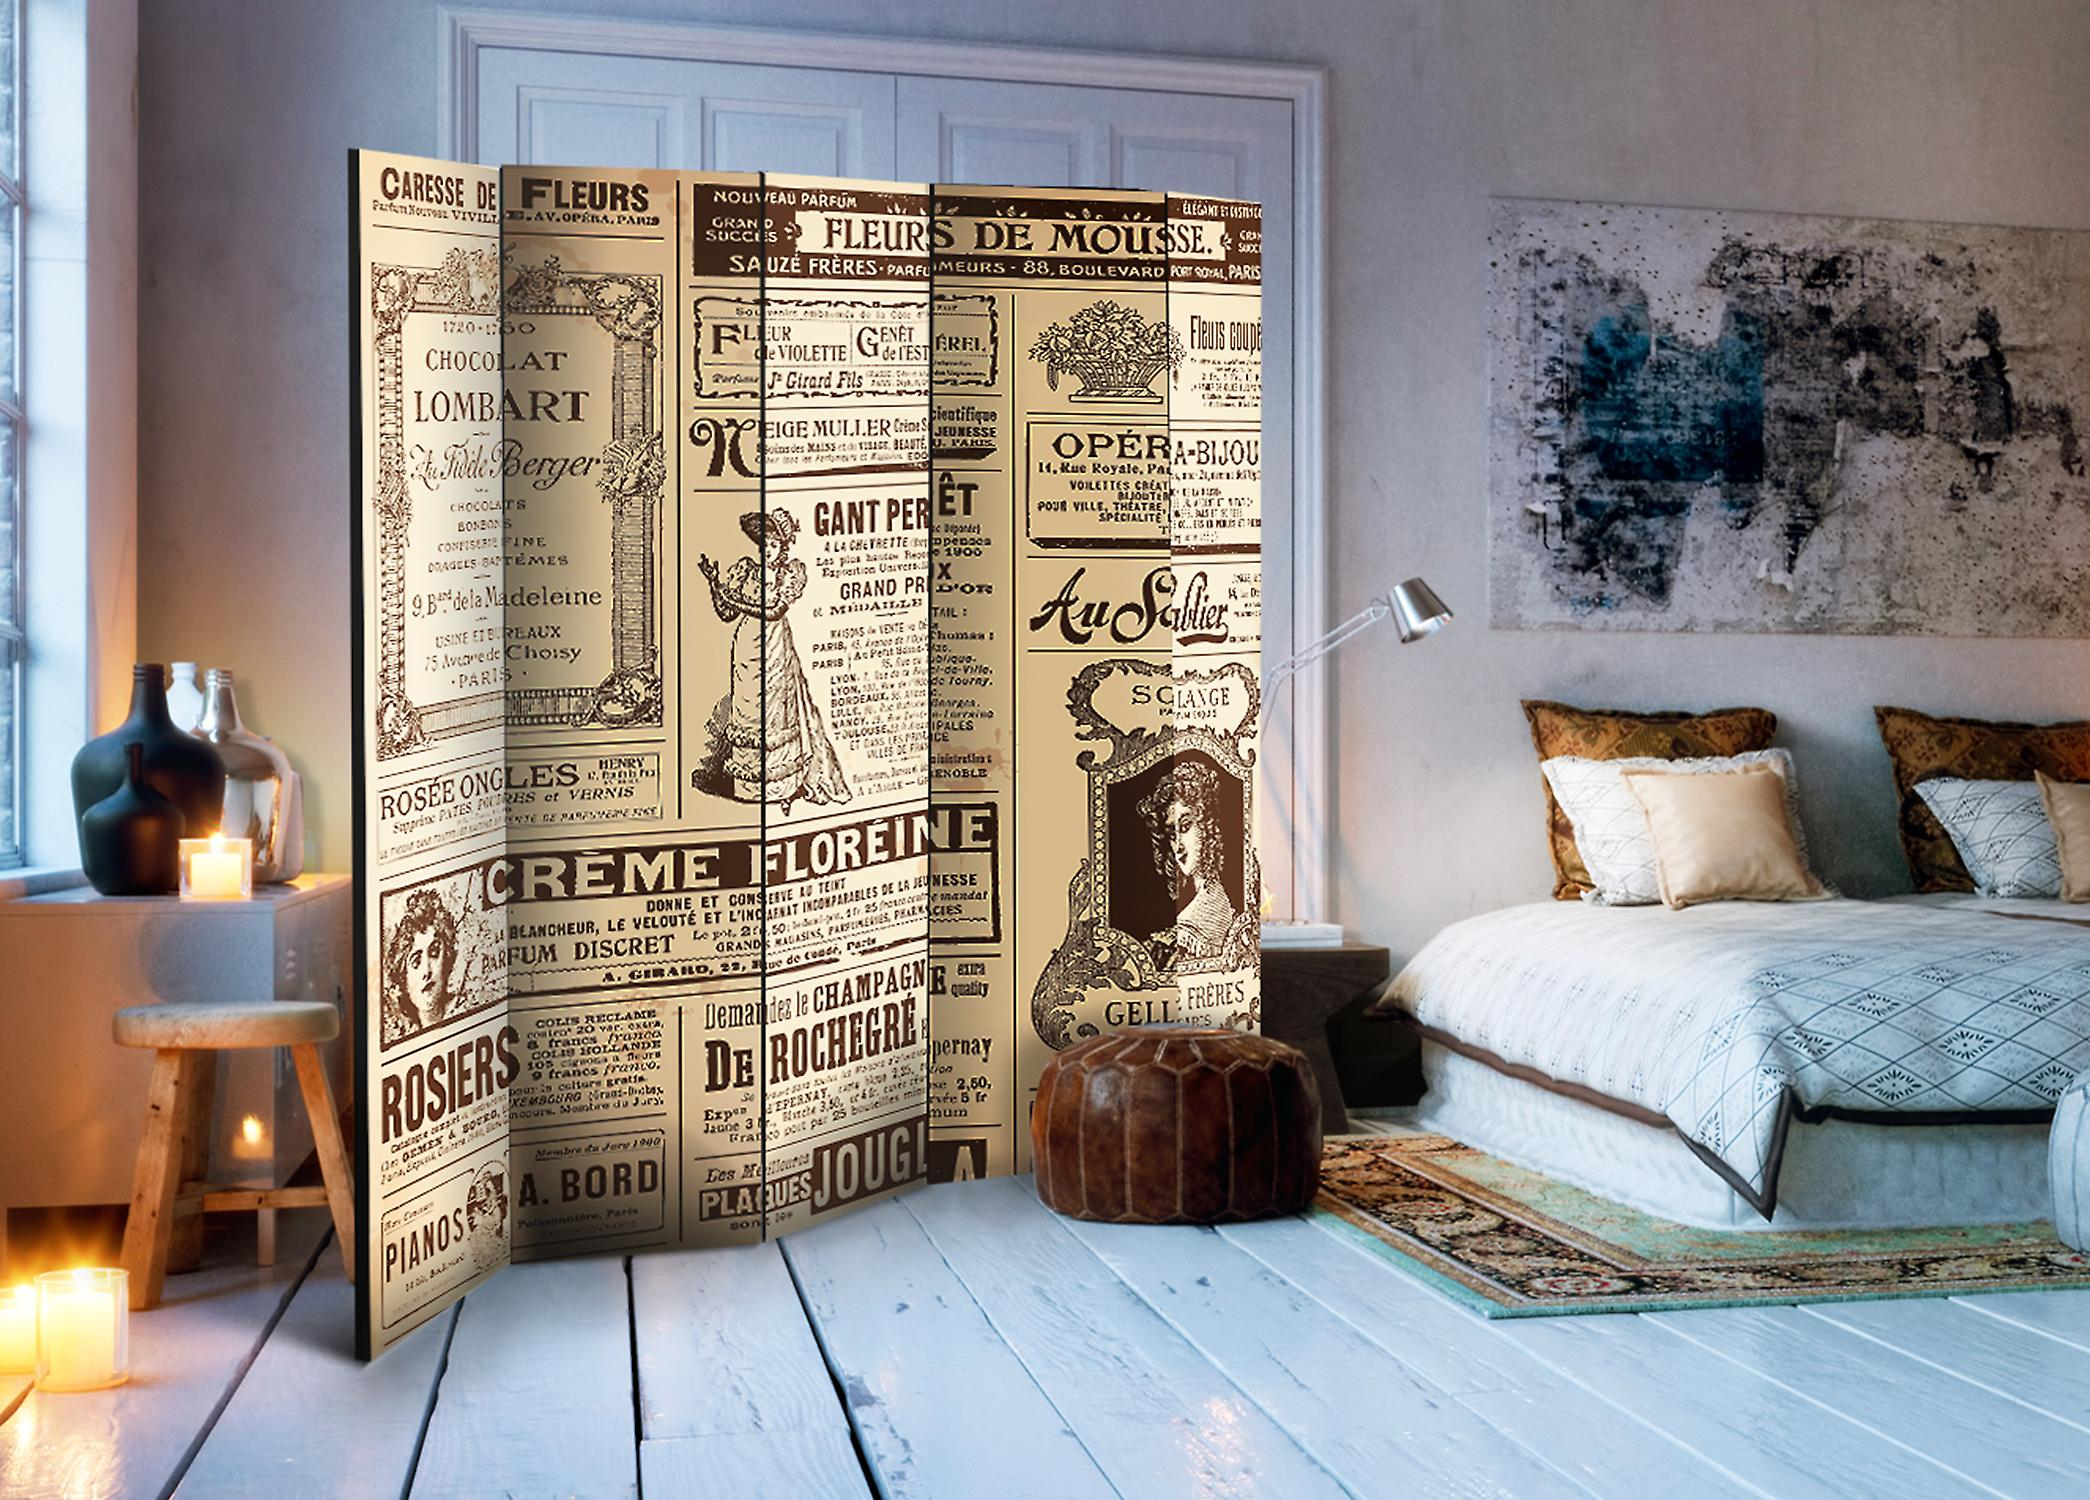 Iiroom Room Room DividerVintage Magazines Dividers shdrCtxQ